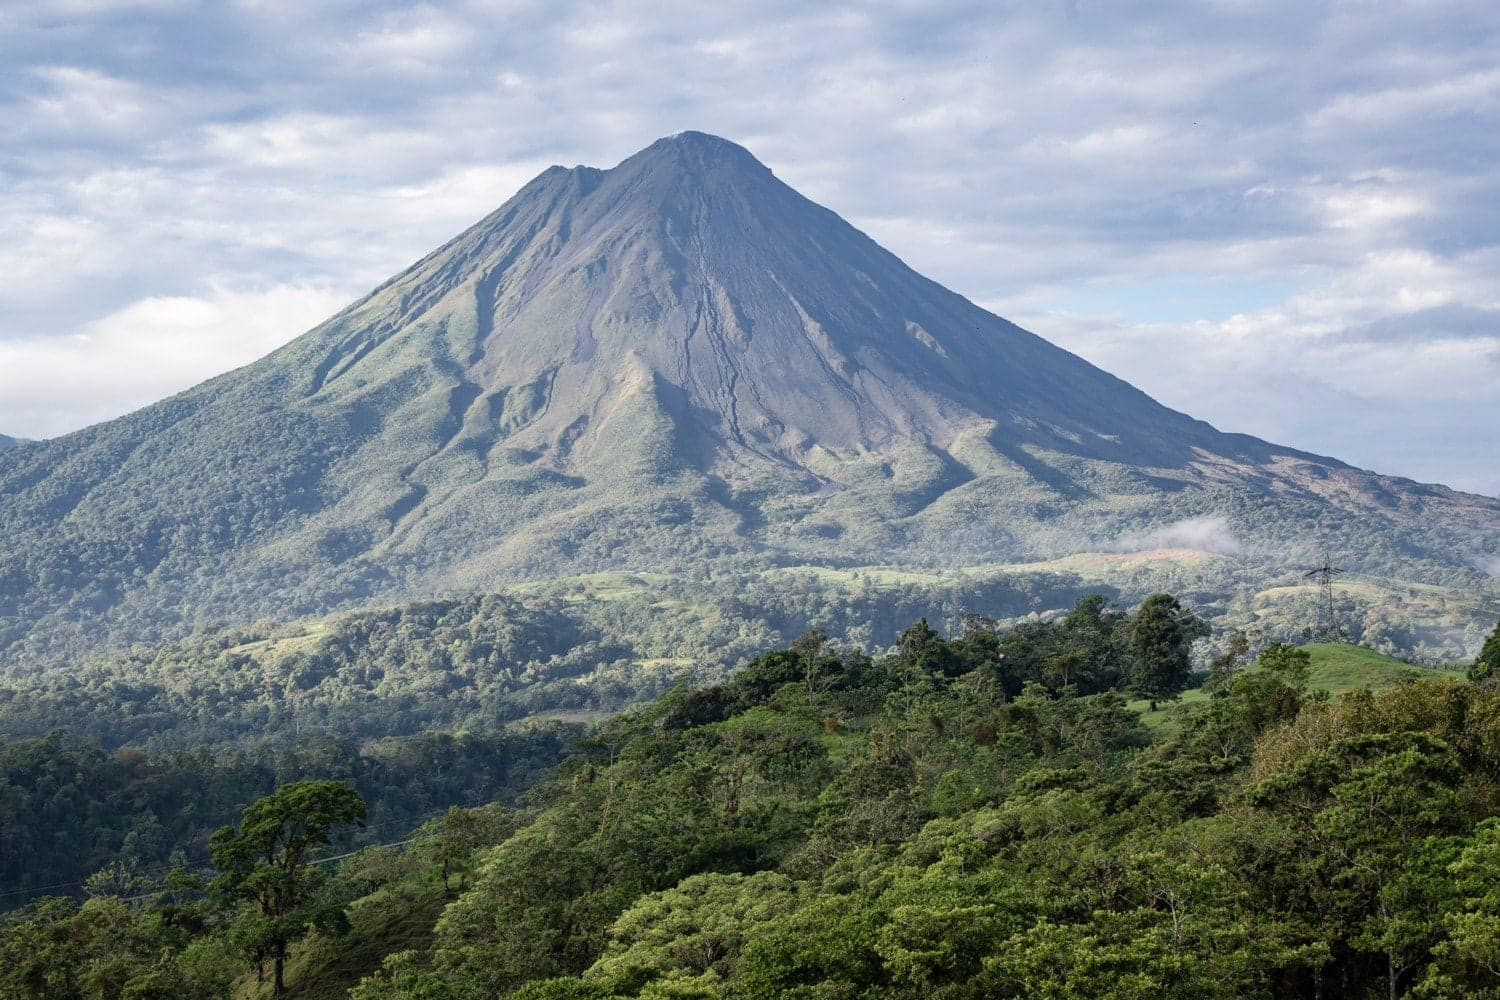 The Arenal Volcano in La Fortuna is a marvelous setting for an engagement in Costa Rica.